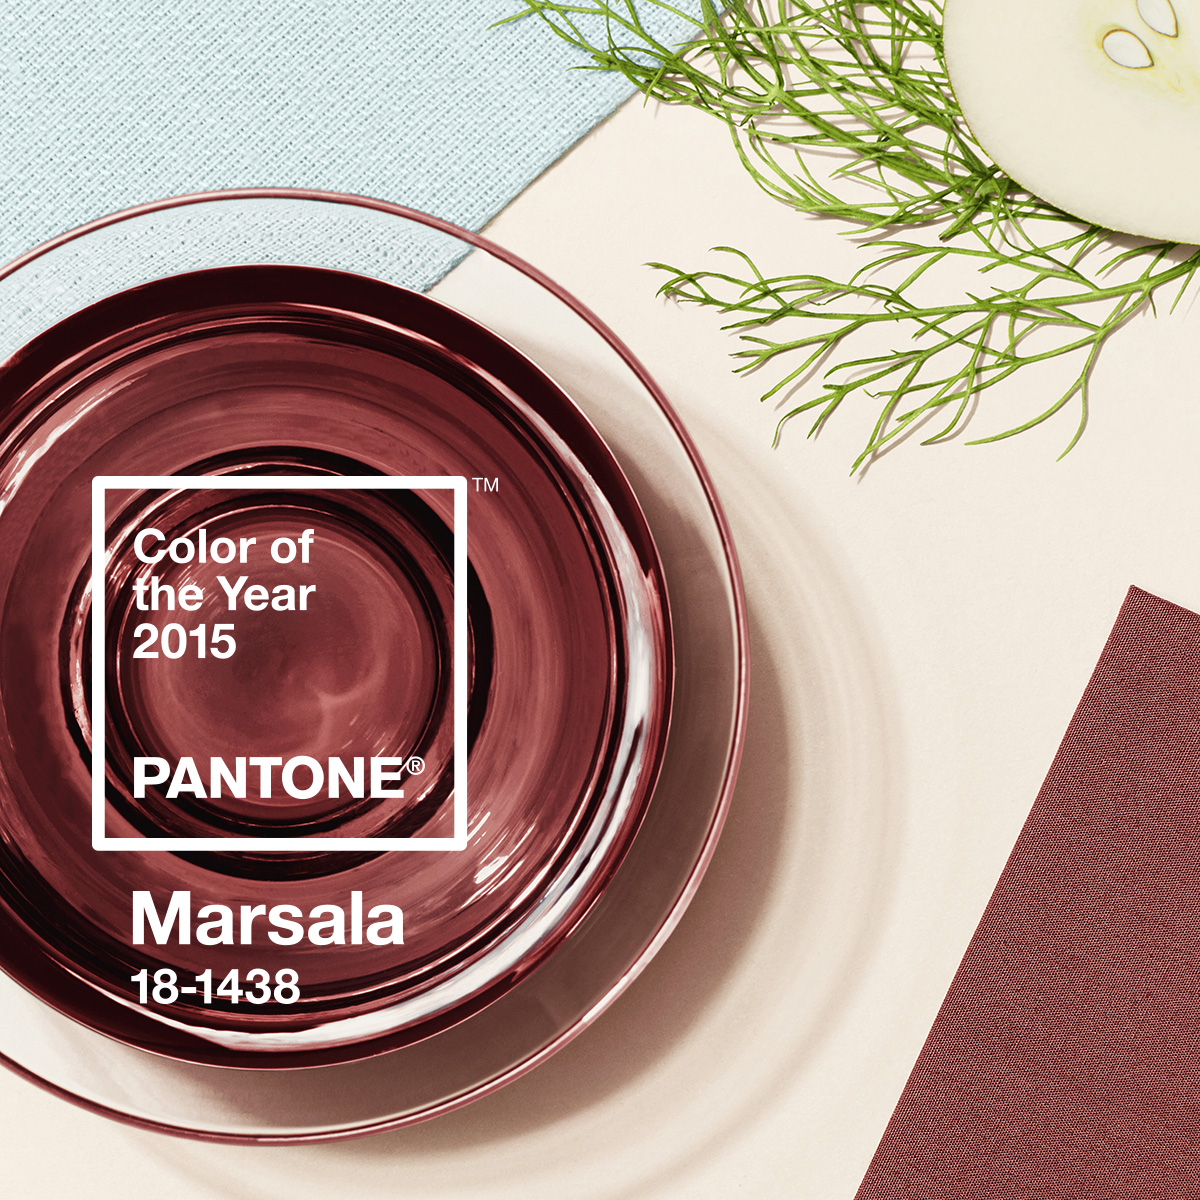 Marsala Inspiration Boards - Pantone's 2015 Color of the Year